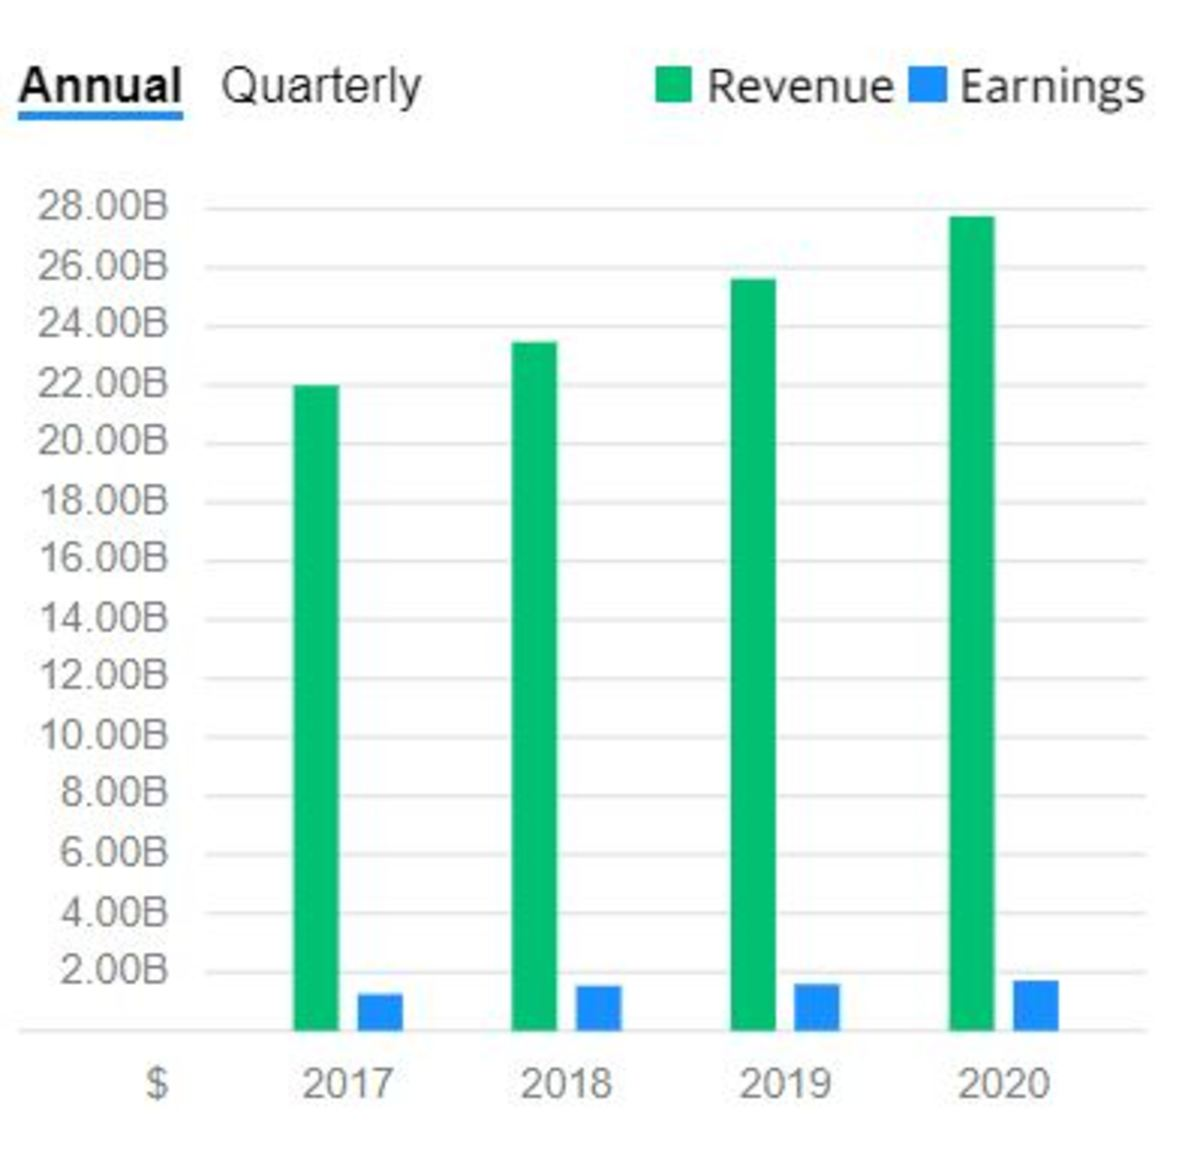 Chart of revenue and earning growth for the Dollar General Corporation. Both revenue and earnings are increasing.